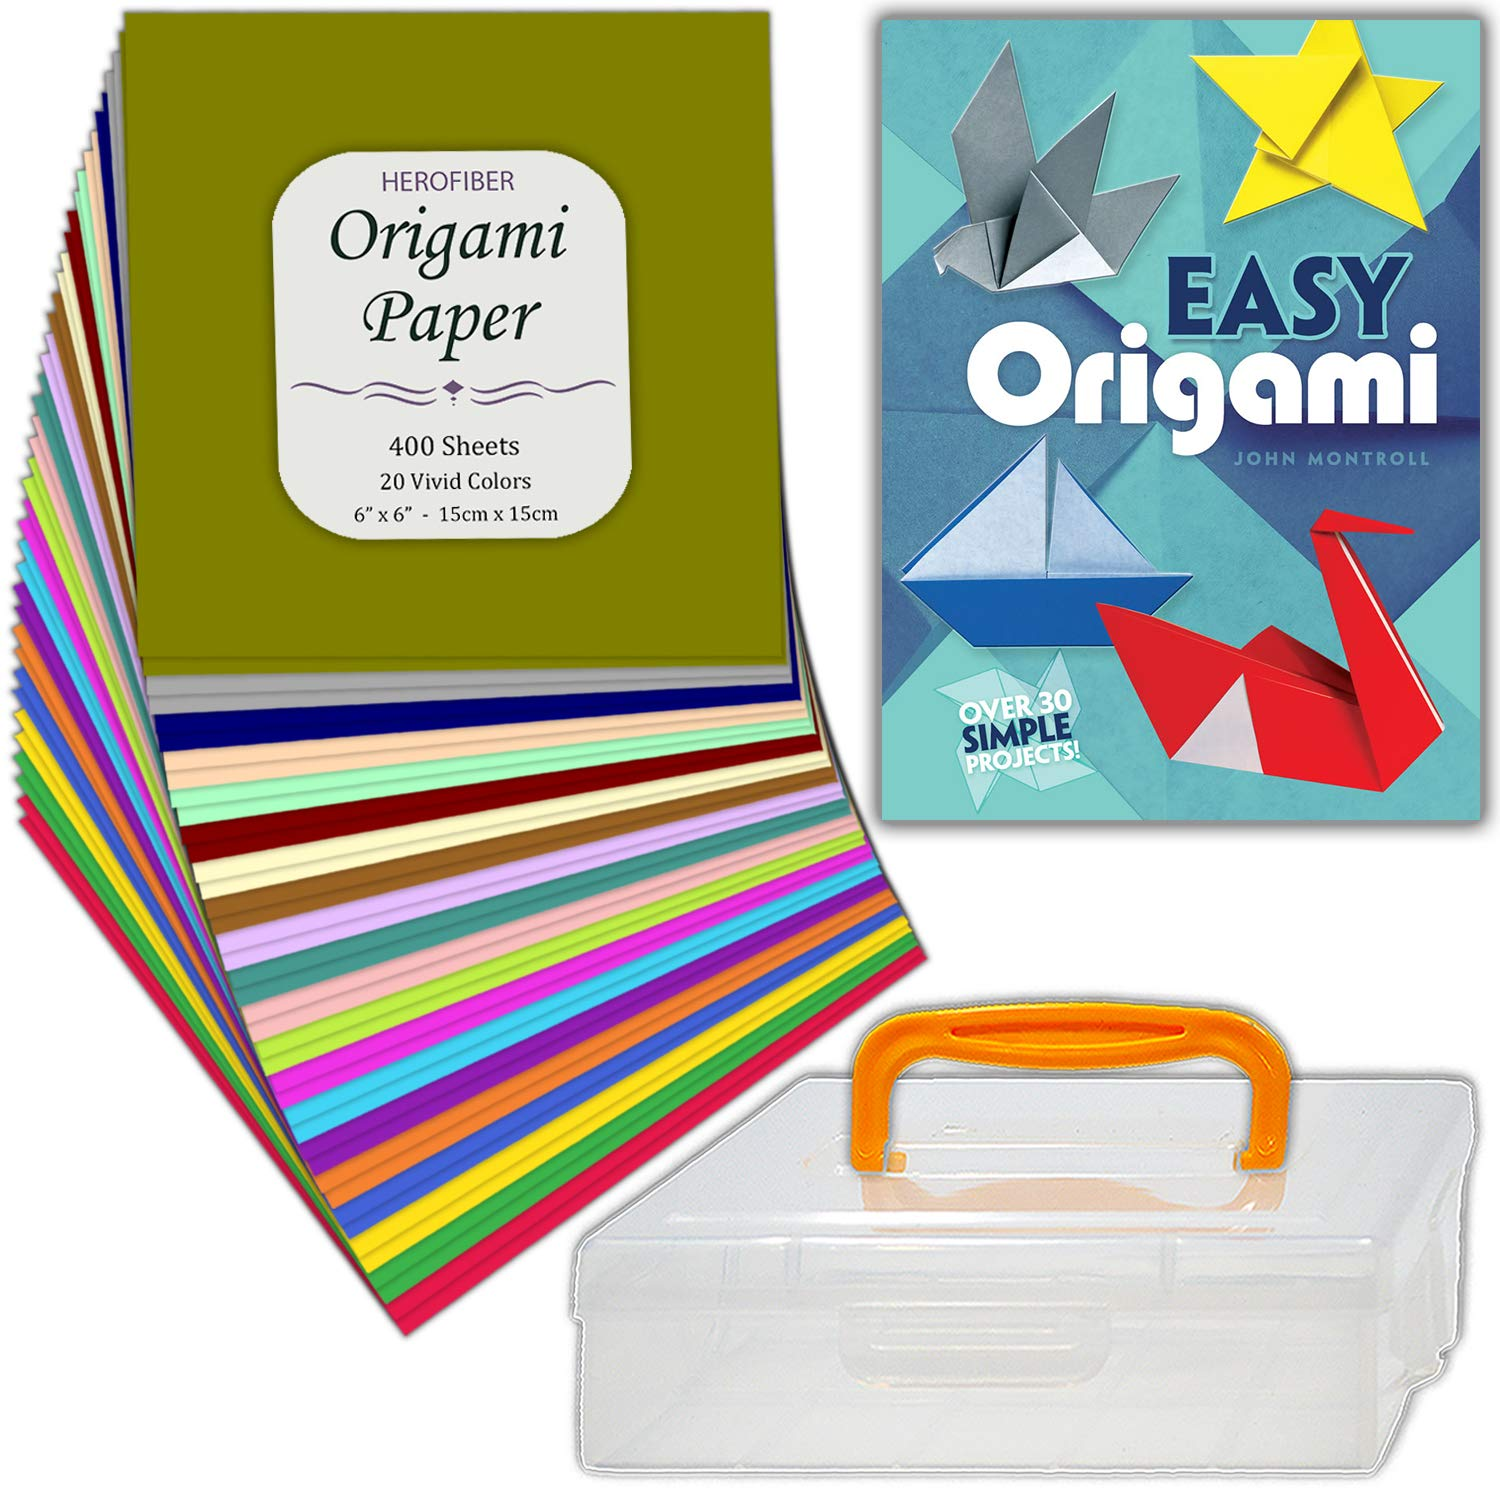 Origami Kit • 400 folding papers (20 colors) + ''Easy Origami'' book of 32 illustrated projects + craft storage container • Complete essential arts, fun, play, hobby gift set for adults, kids, beginners by HeroFiber